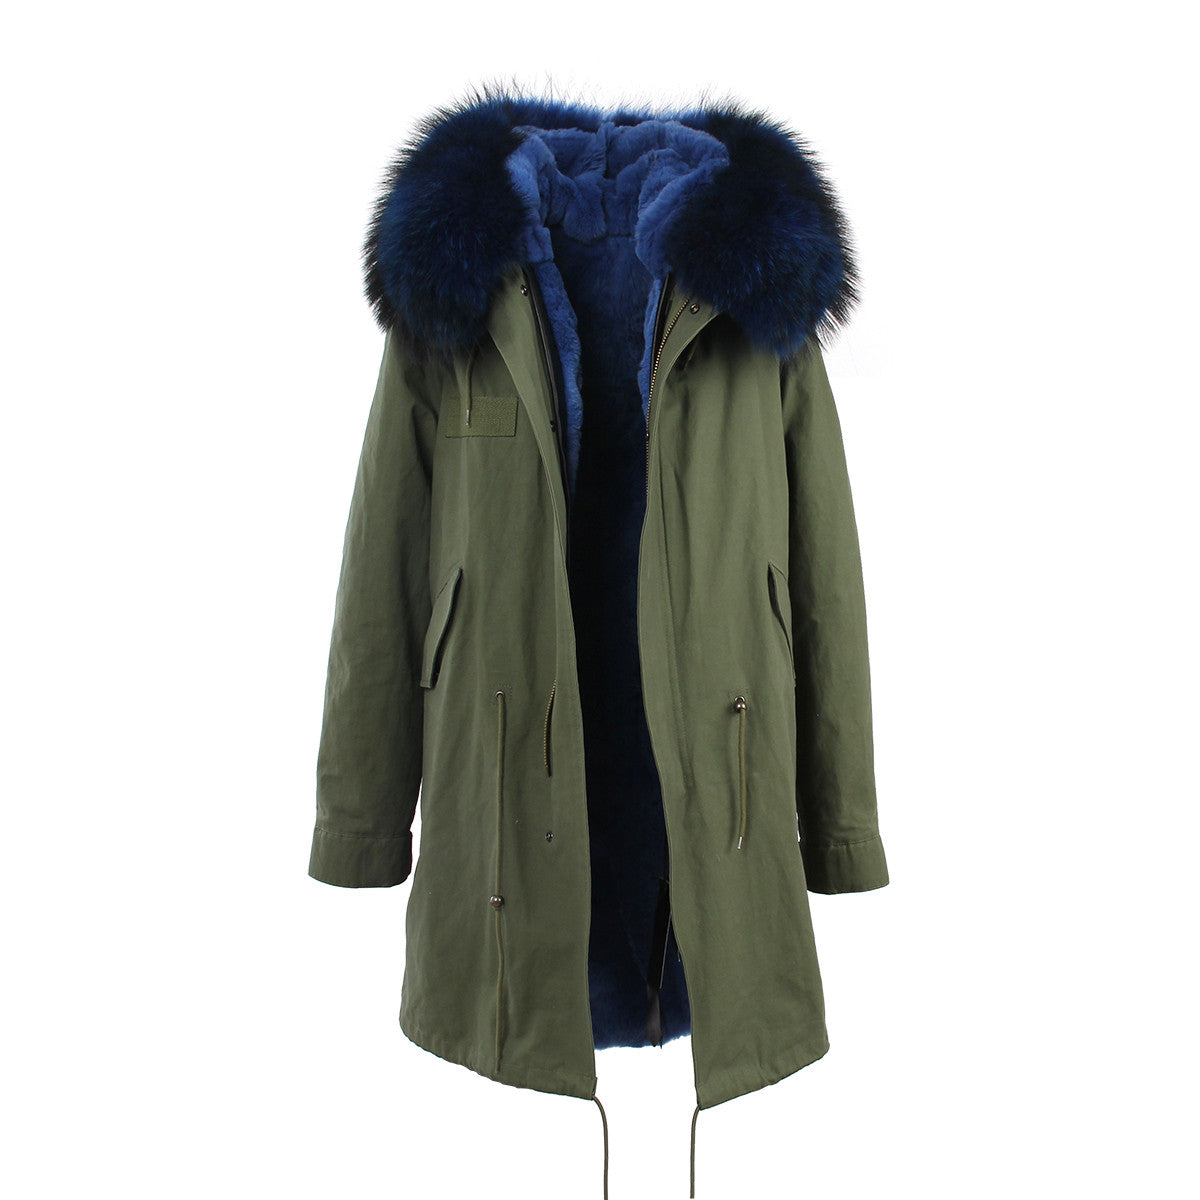 Fashion Women Raccoon Rabbit Fur Coat - All In One Place With Us - 18